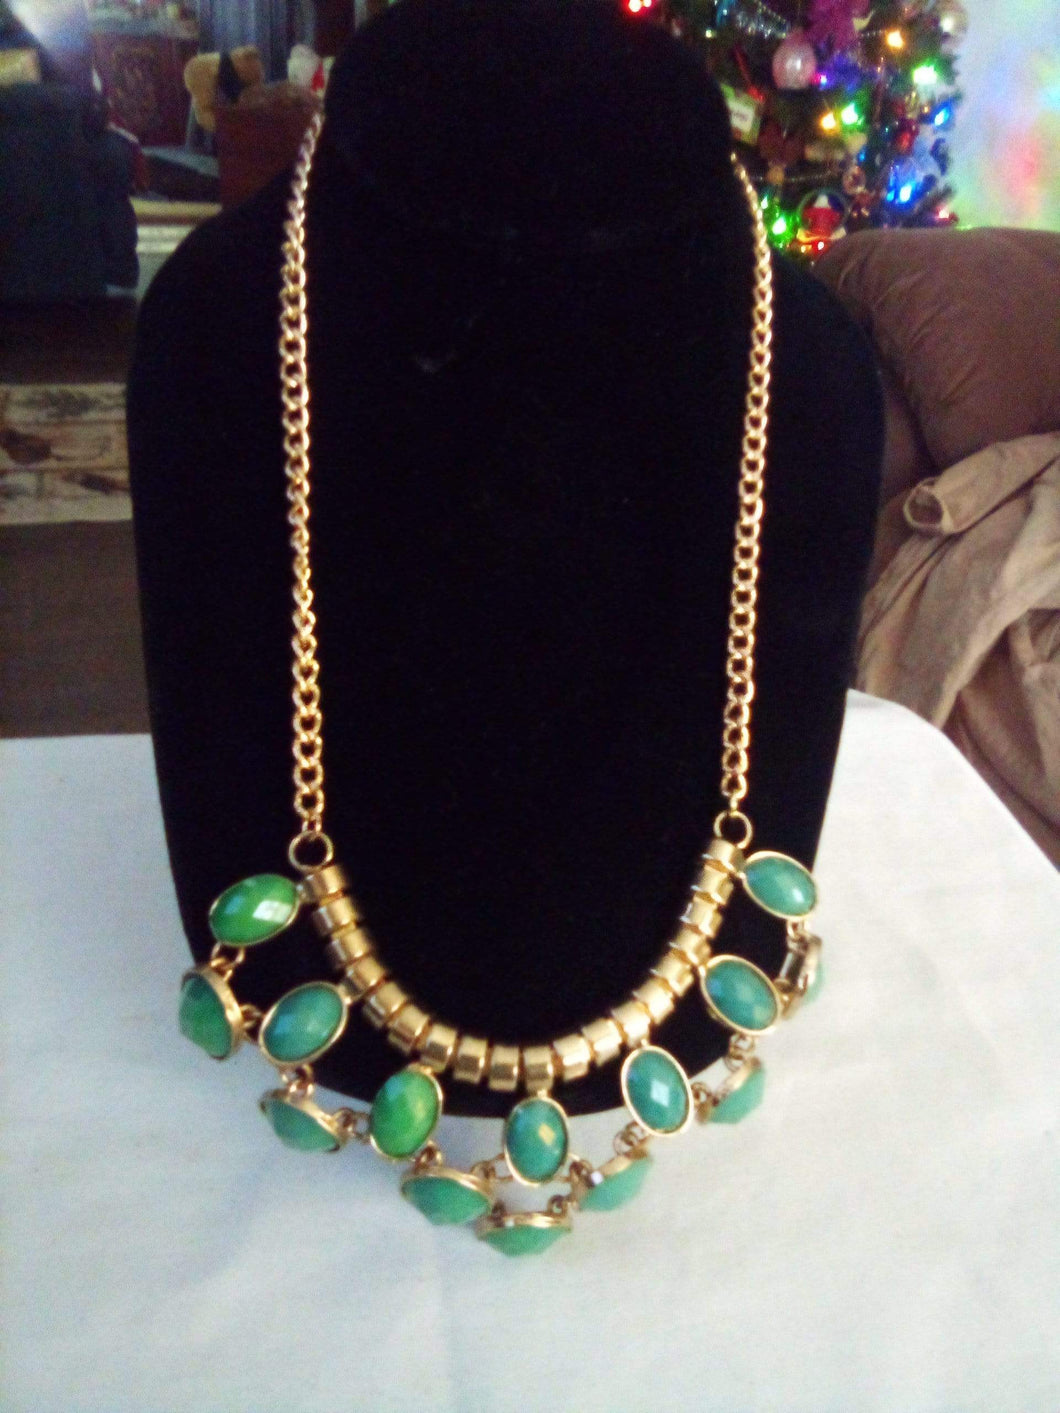 Pretty necklace with green design - B&P'sringsnthings